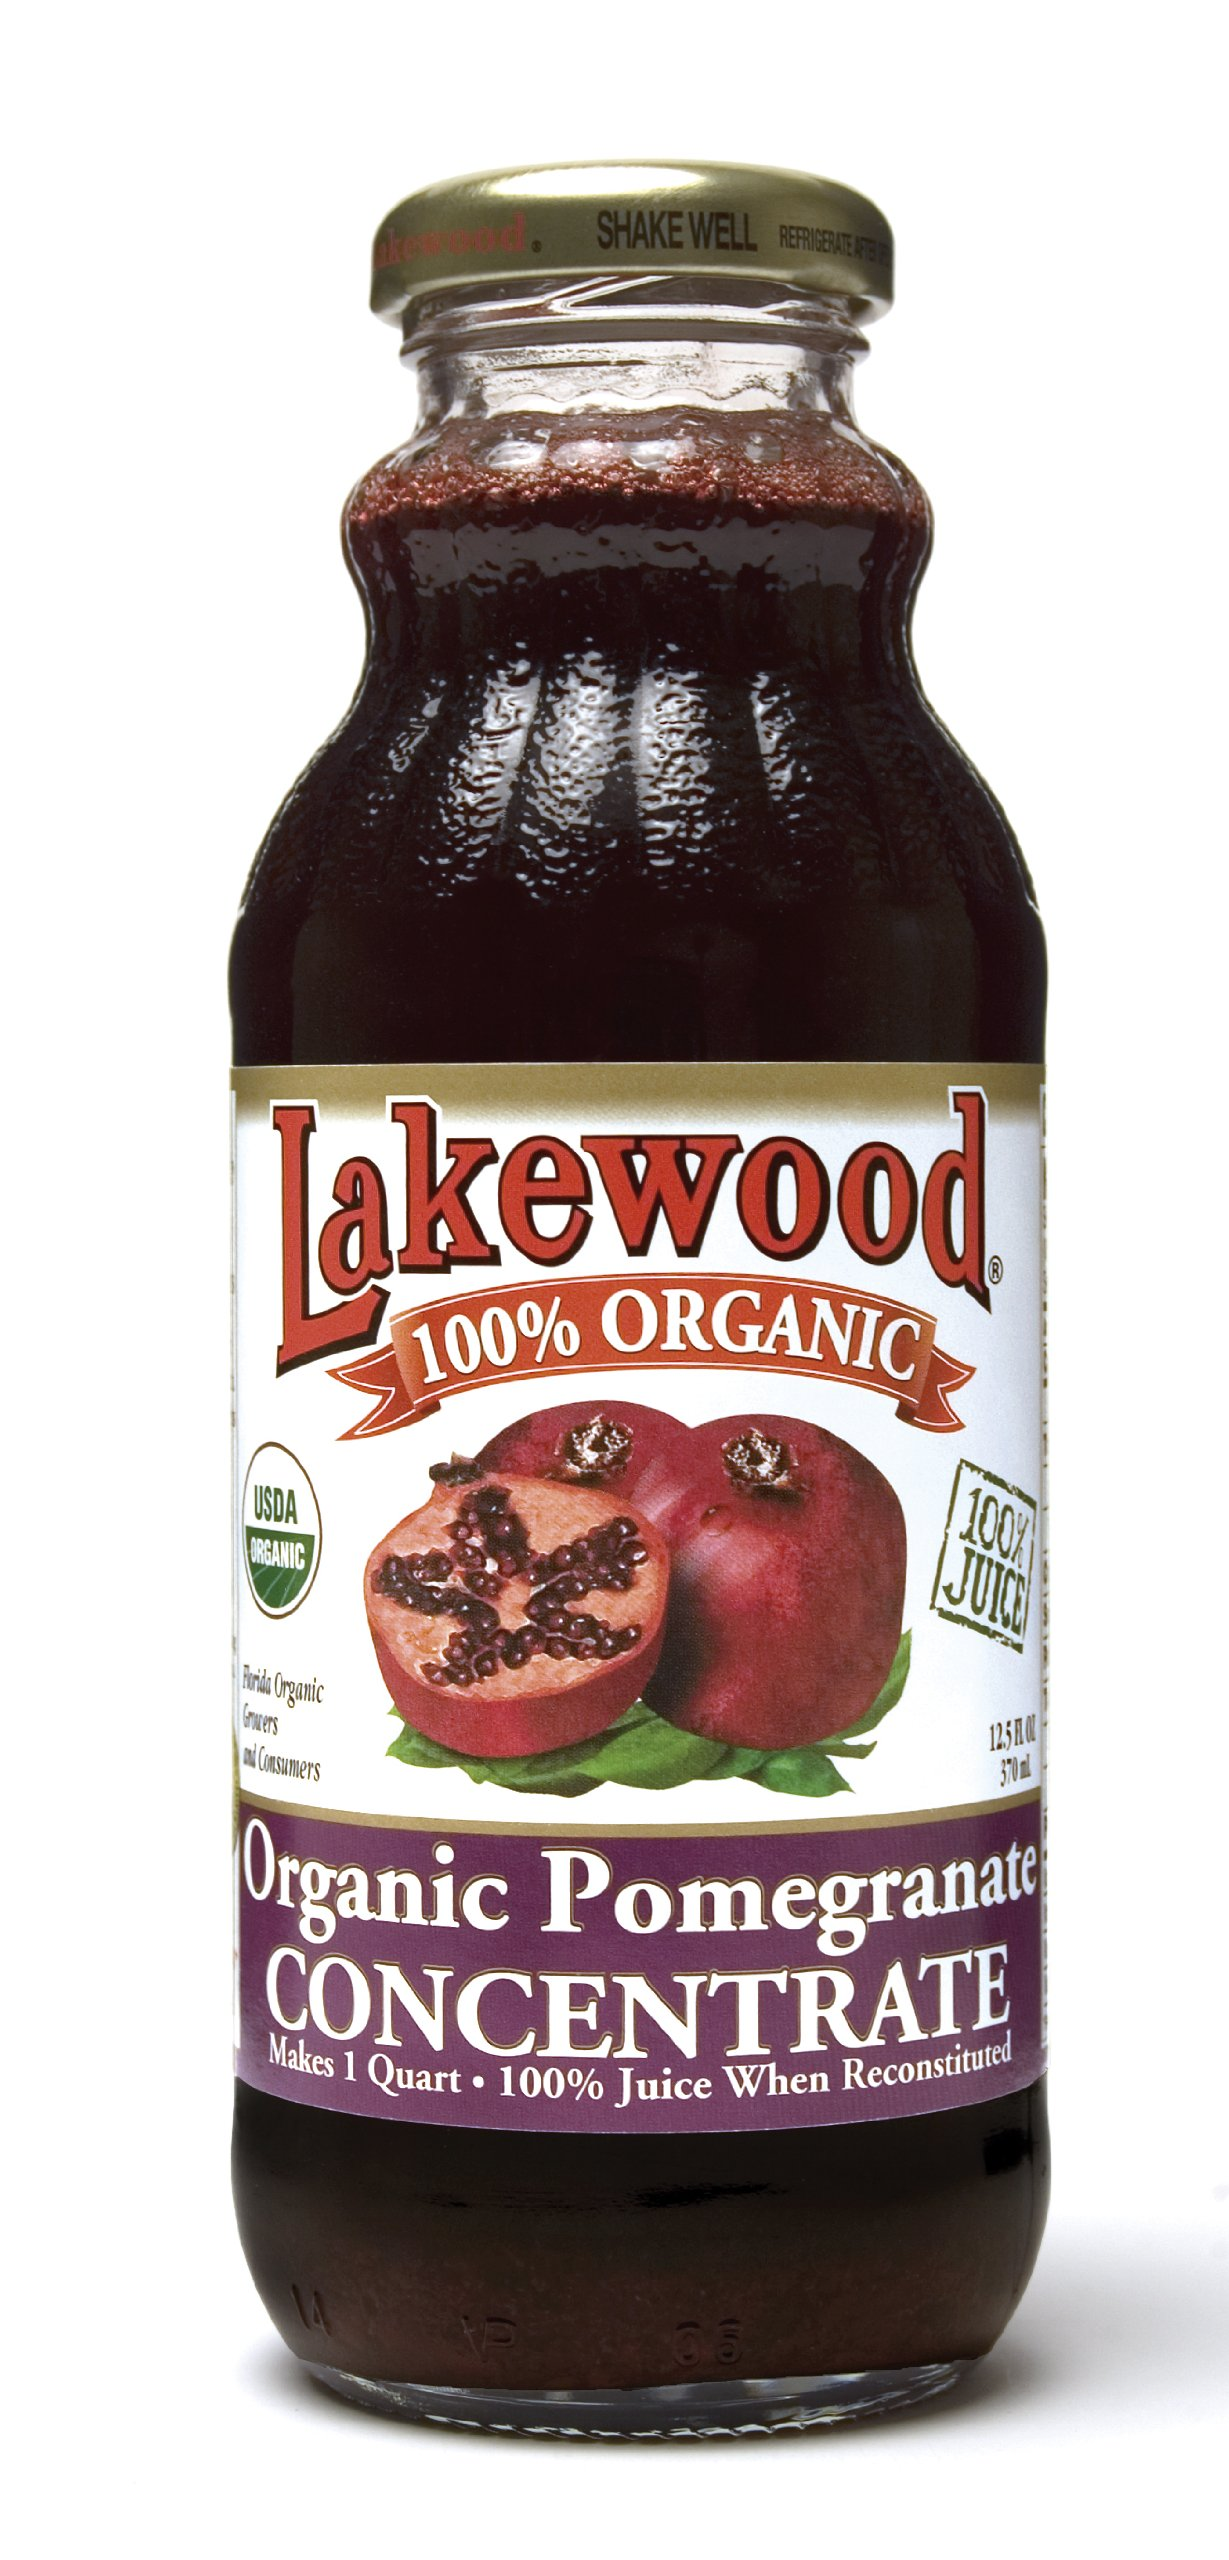 Lakewood Organic Pomegranate Concentrate Juice, 12.5-Ounce Bottles (Pack of 12) by Lakewood